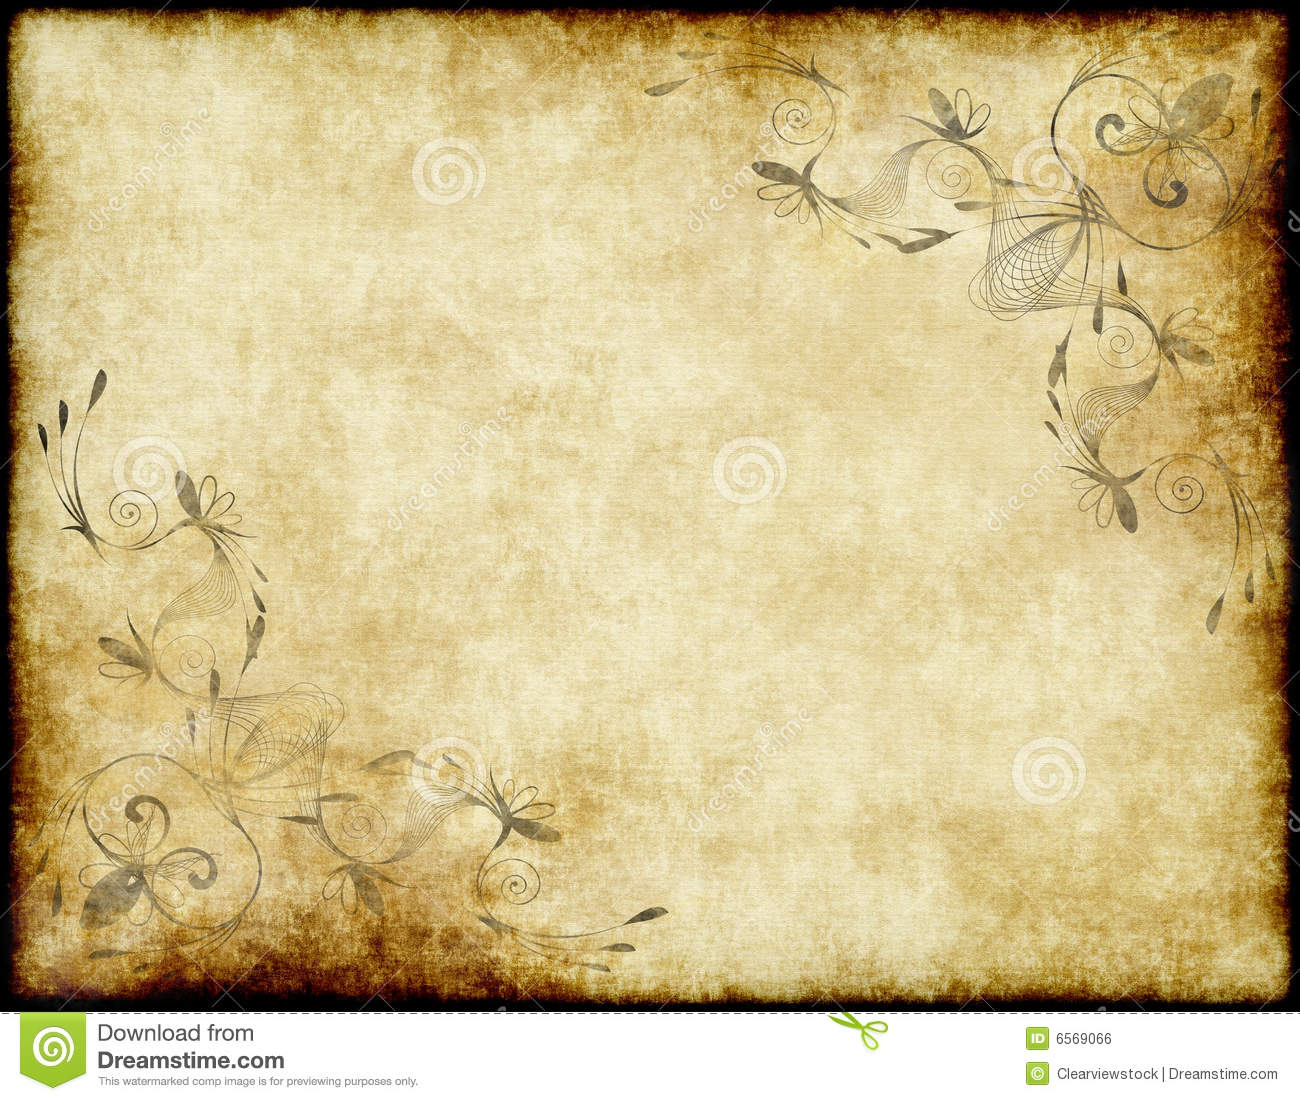 Old Paper Or Parchment Royalty Free Stock Image - Image: 6569066